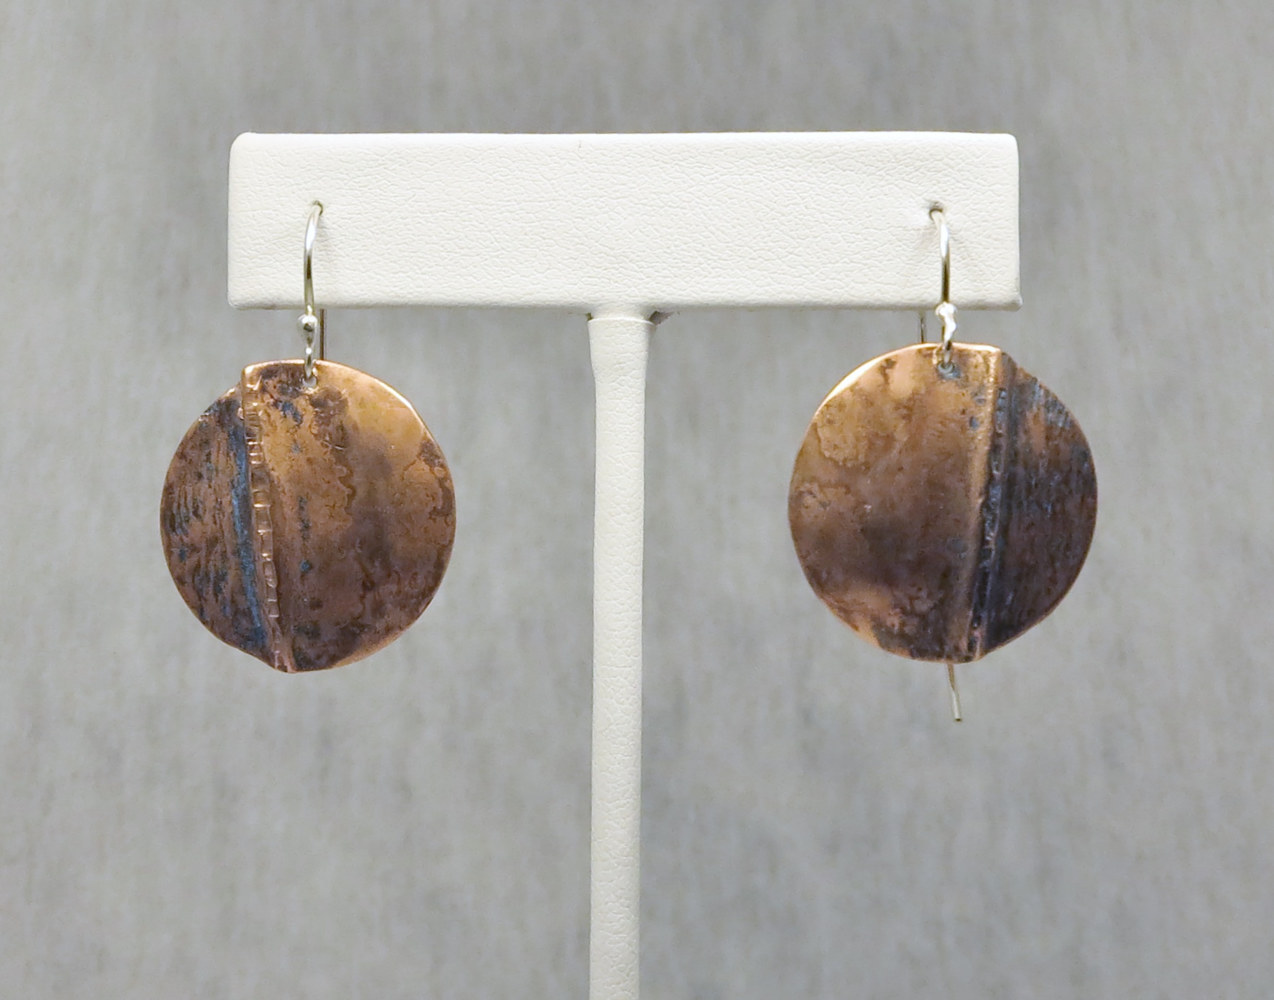 copper textured and formed earings by Vicki Allesia